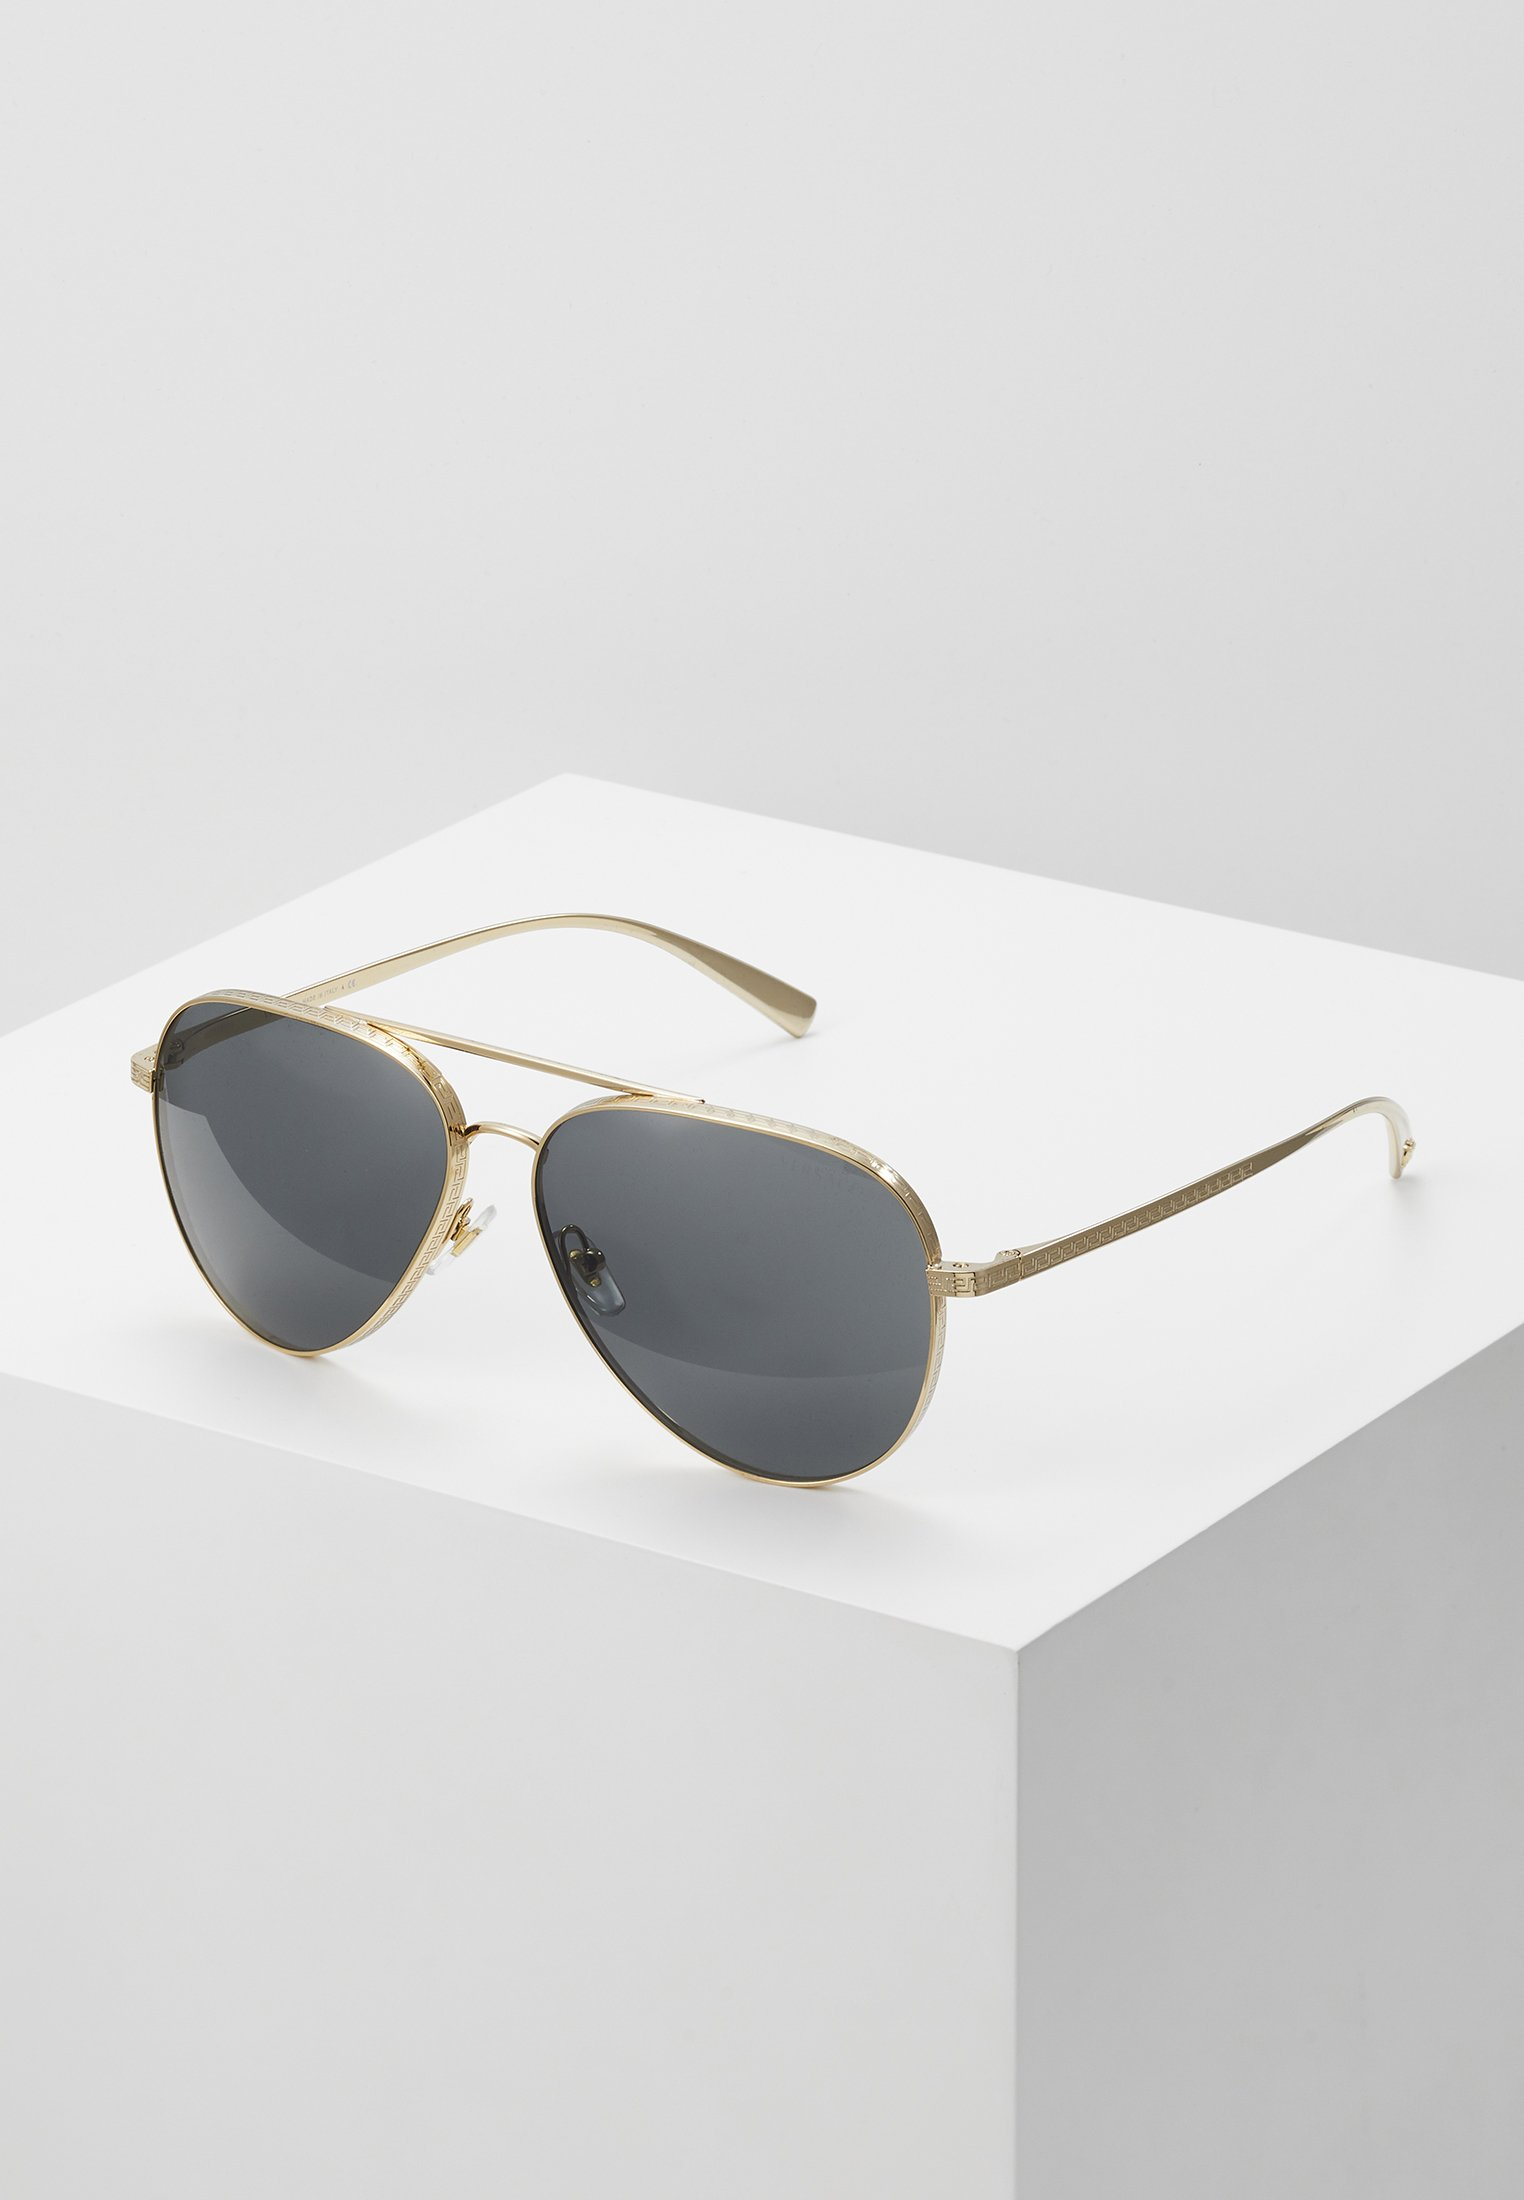 2013 Outlet Versace Sunglasses - gold-coloured | men's accessories 2020 HtlL5